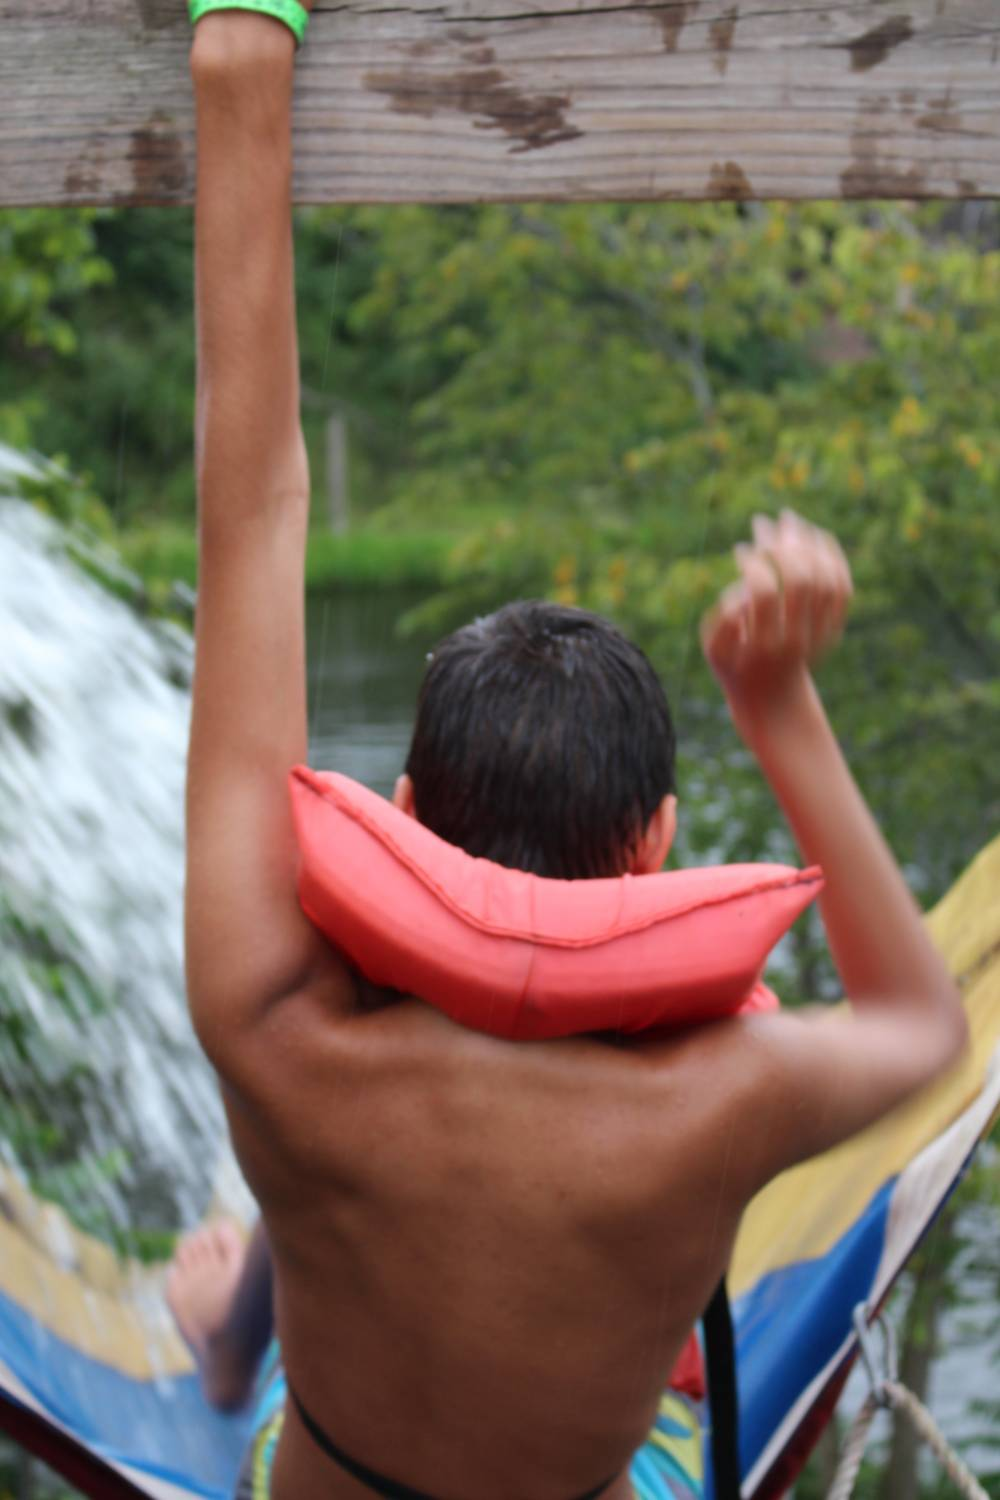 TOP PENNSYLVANIA SUMMER CAMP: Summer LIFE is a Top Summer Camp located in Scwenksville Pennsylvania offering many fun and enriching camp programs.